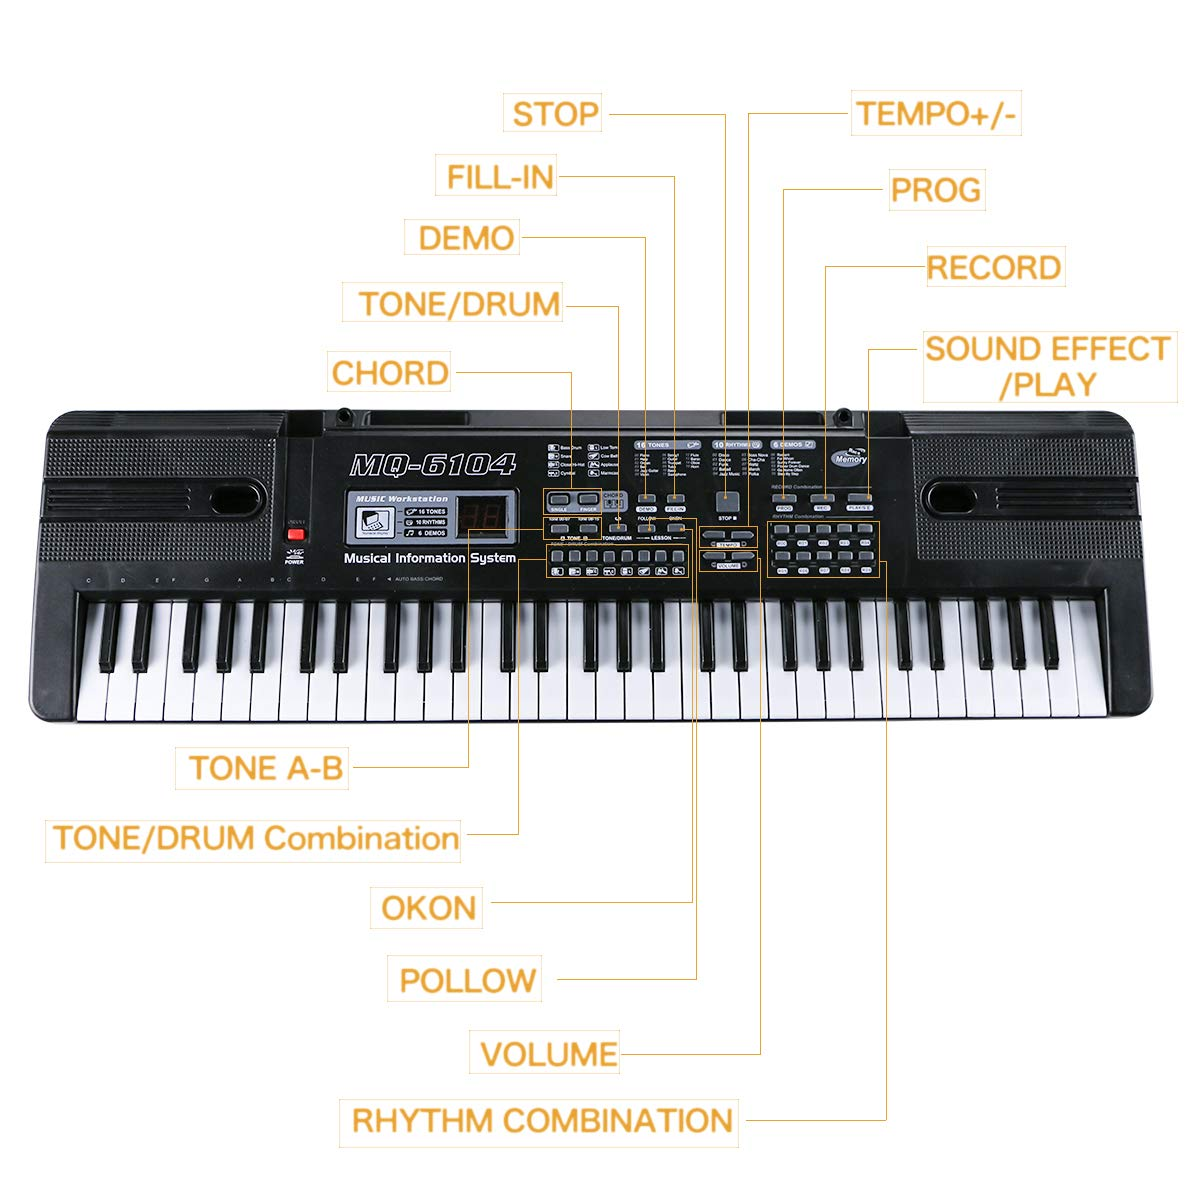 Digital Music Piano Keyboard 61 Key - Portable Electronic Musical Instrument with Microphone Kids Piano Musical Teaching Keyboard Toy For Birthday Christmas Festival Gift by Tencoz (Image #4)